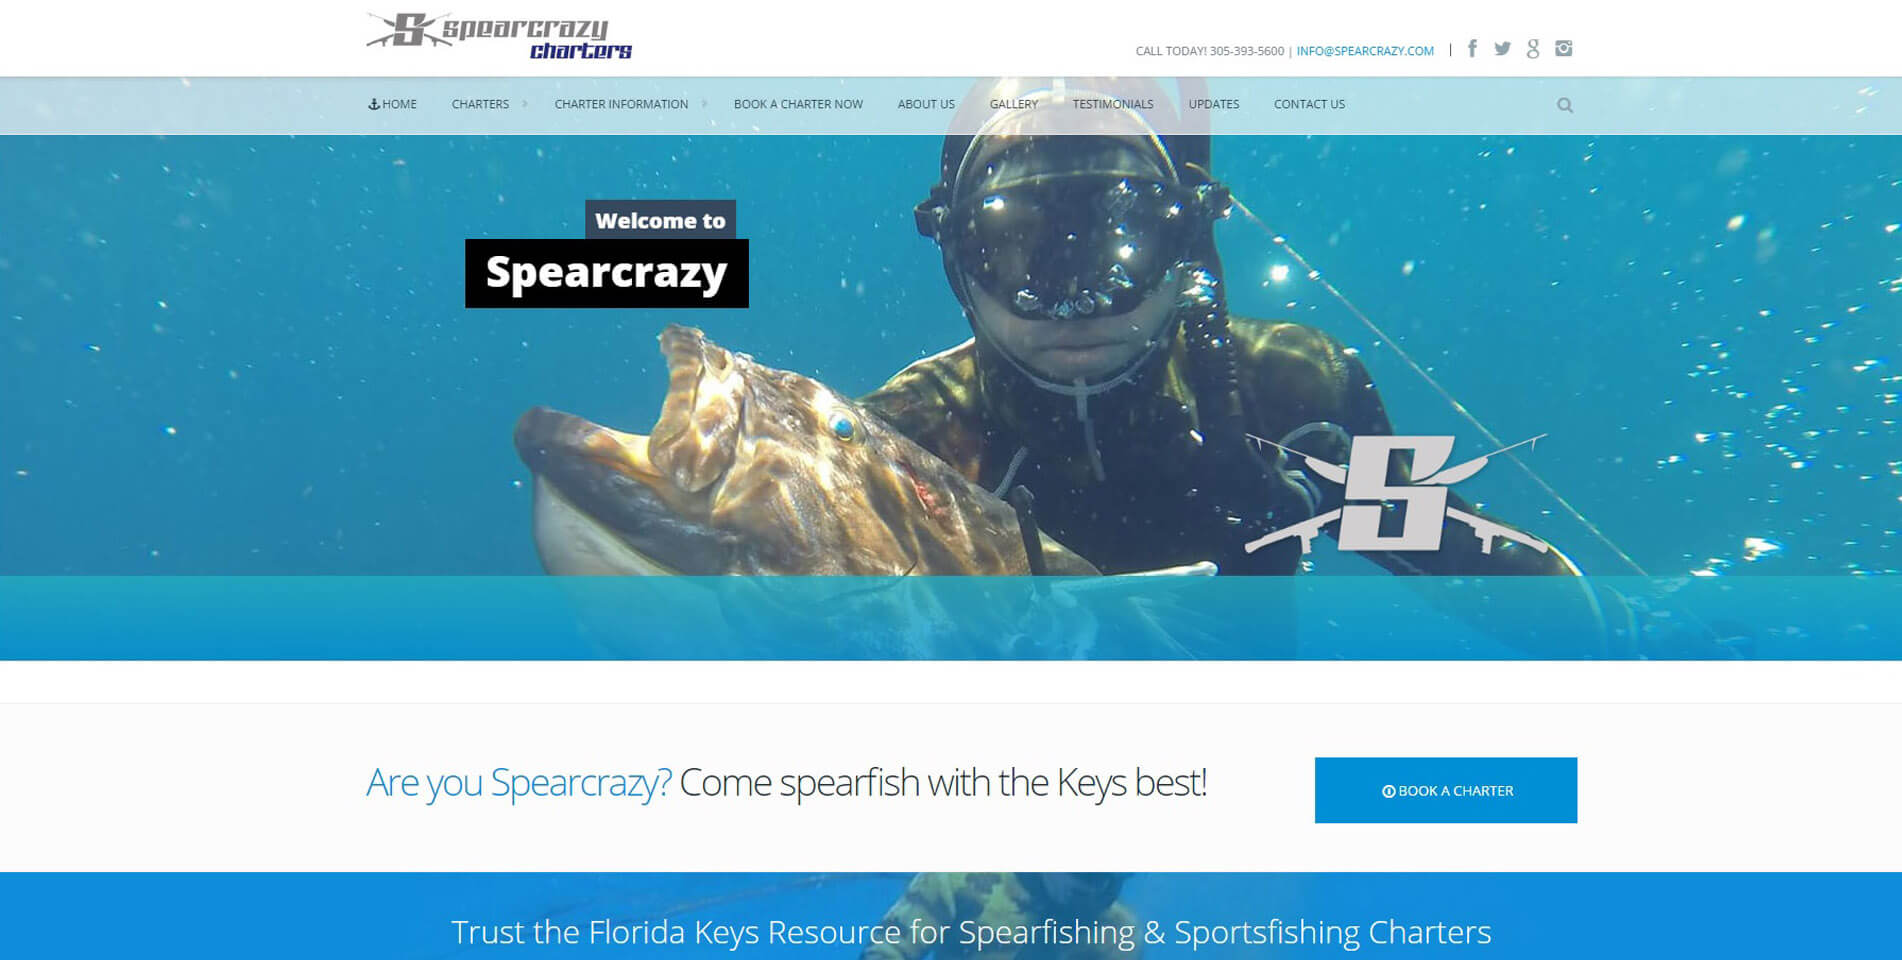 An image of the homepage of Spearcrazy, website created by Not Fade Away.